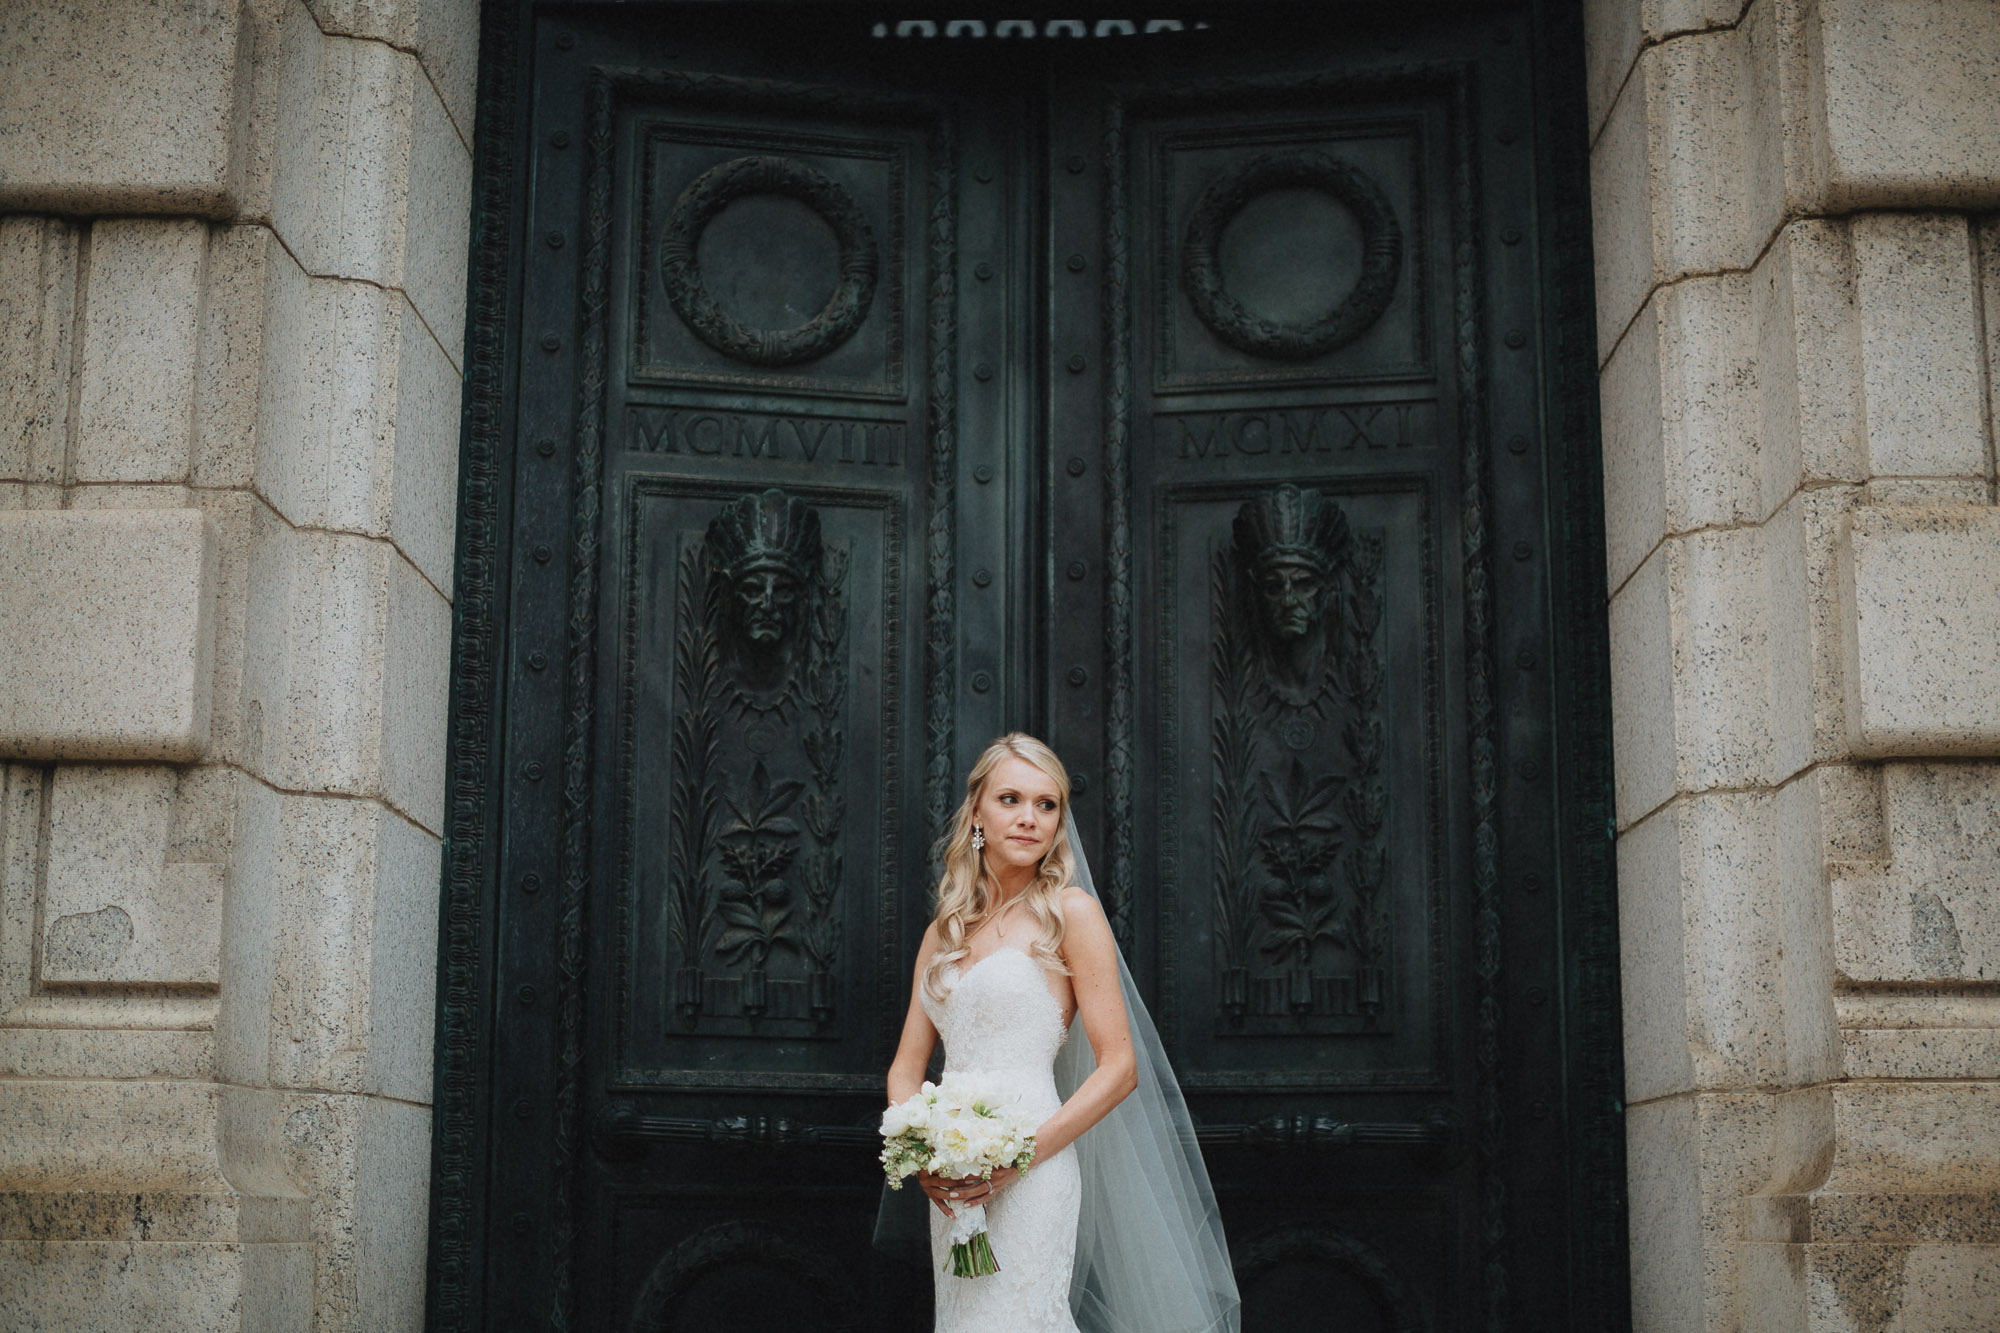 Alana-David-Cleveland-Old-Courthouse-Wedding-132@2x.jpg